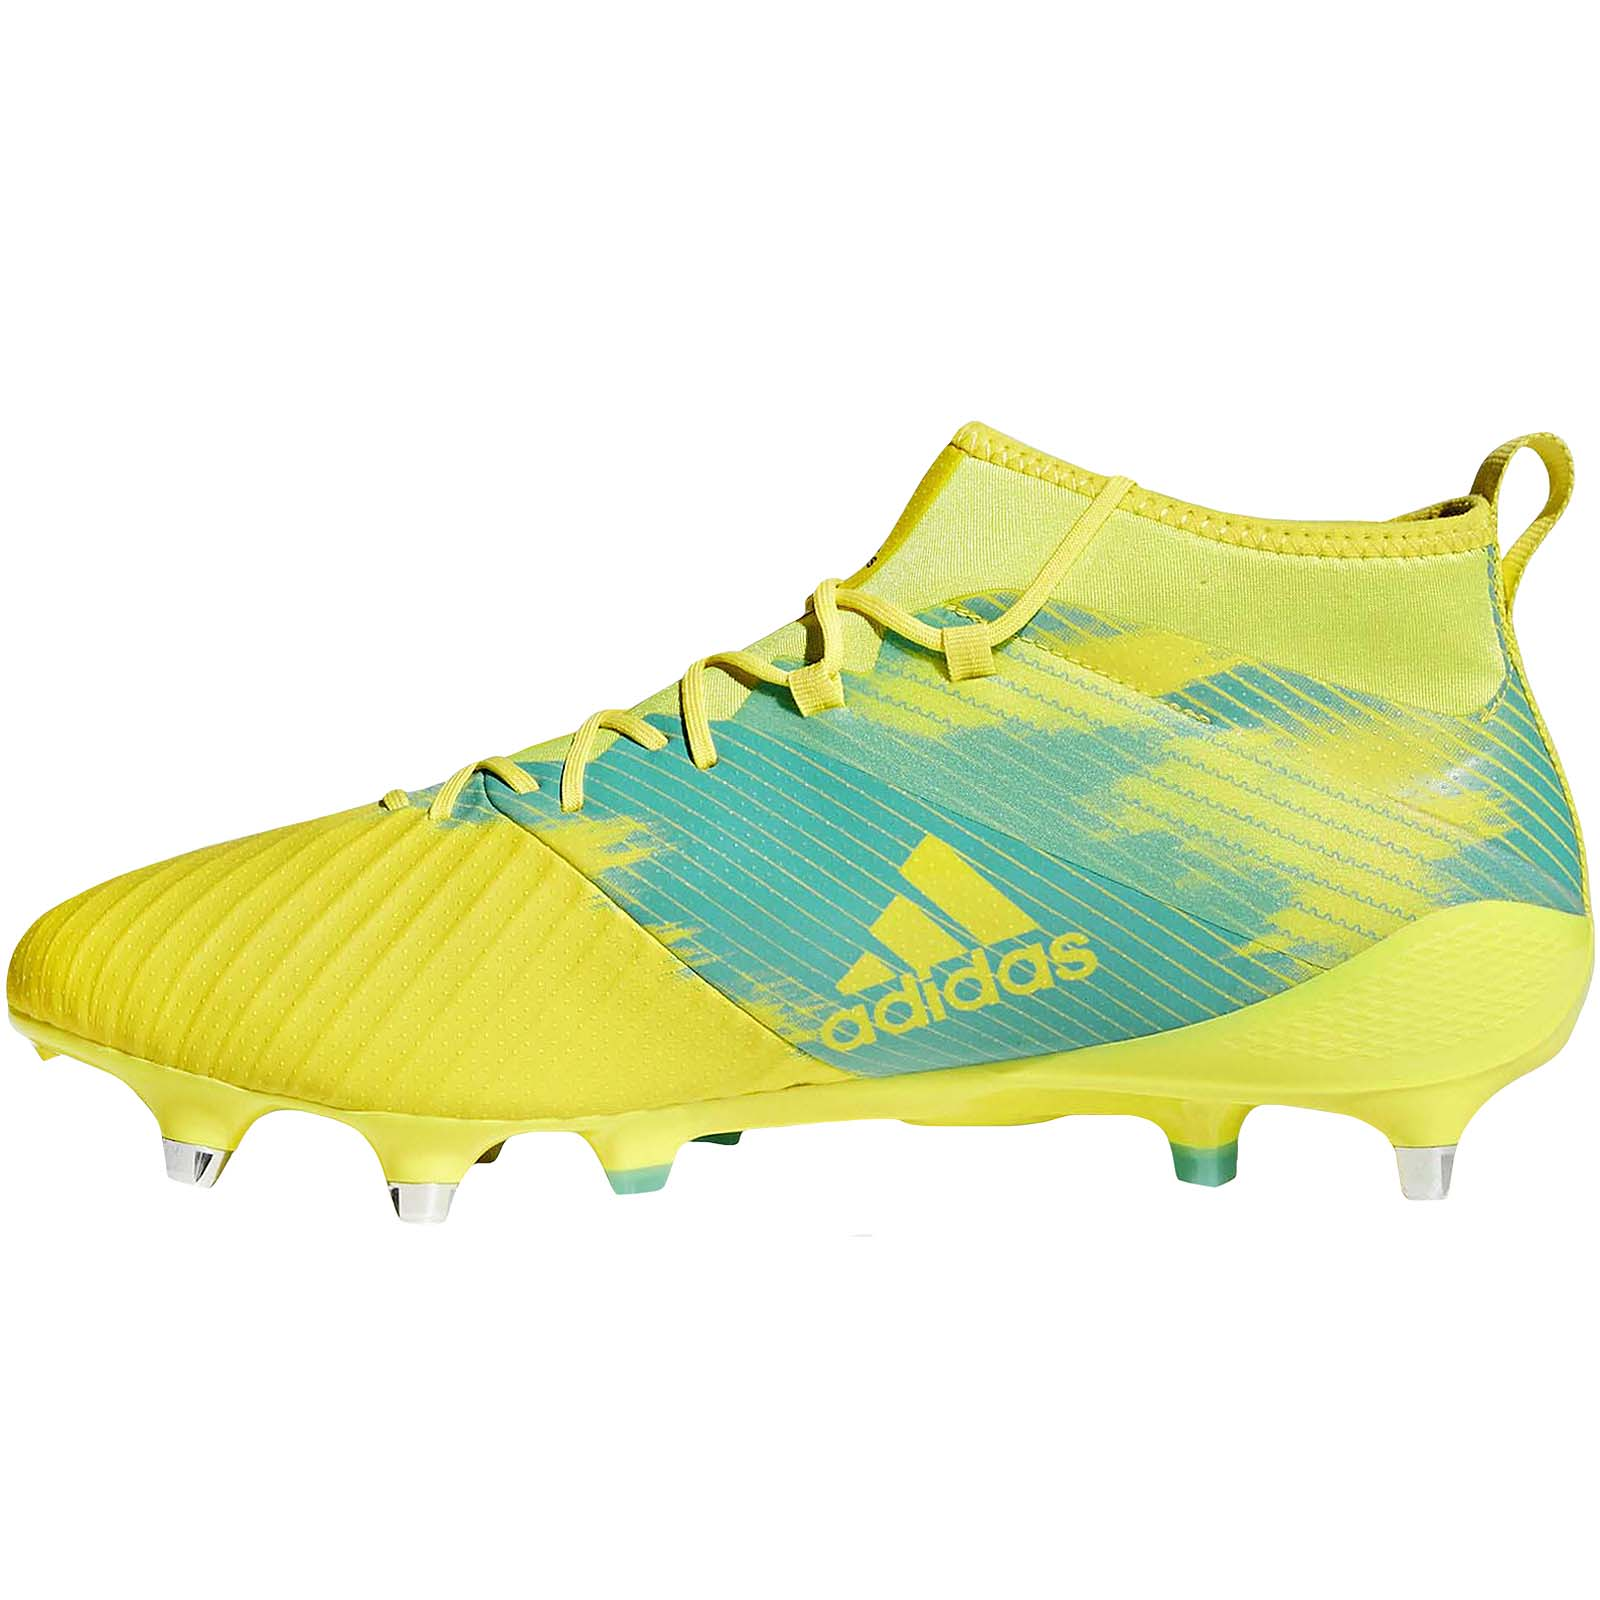 adidas-Performance-Mens-Predator-Flare-SG-Rugby-Shoes-Trainers-Boots thumbnail 14